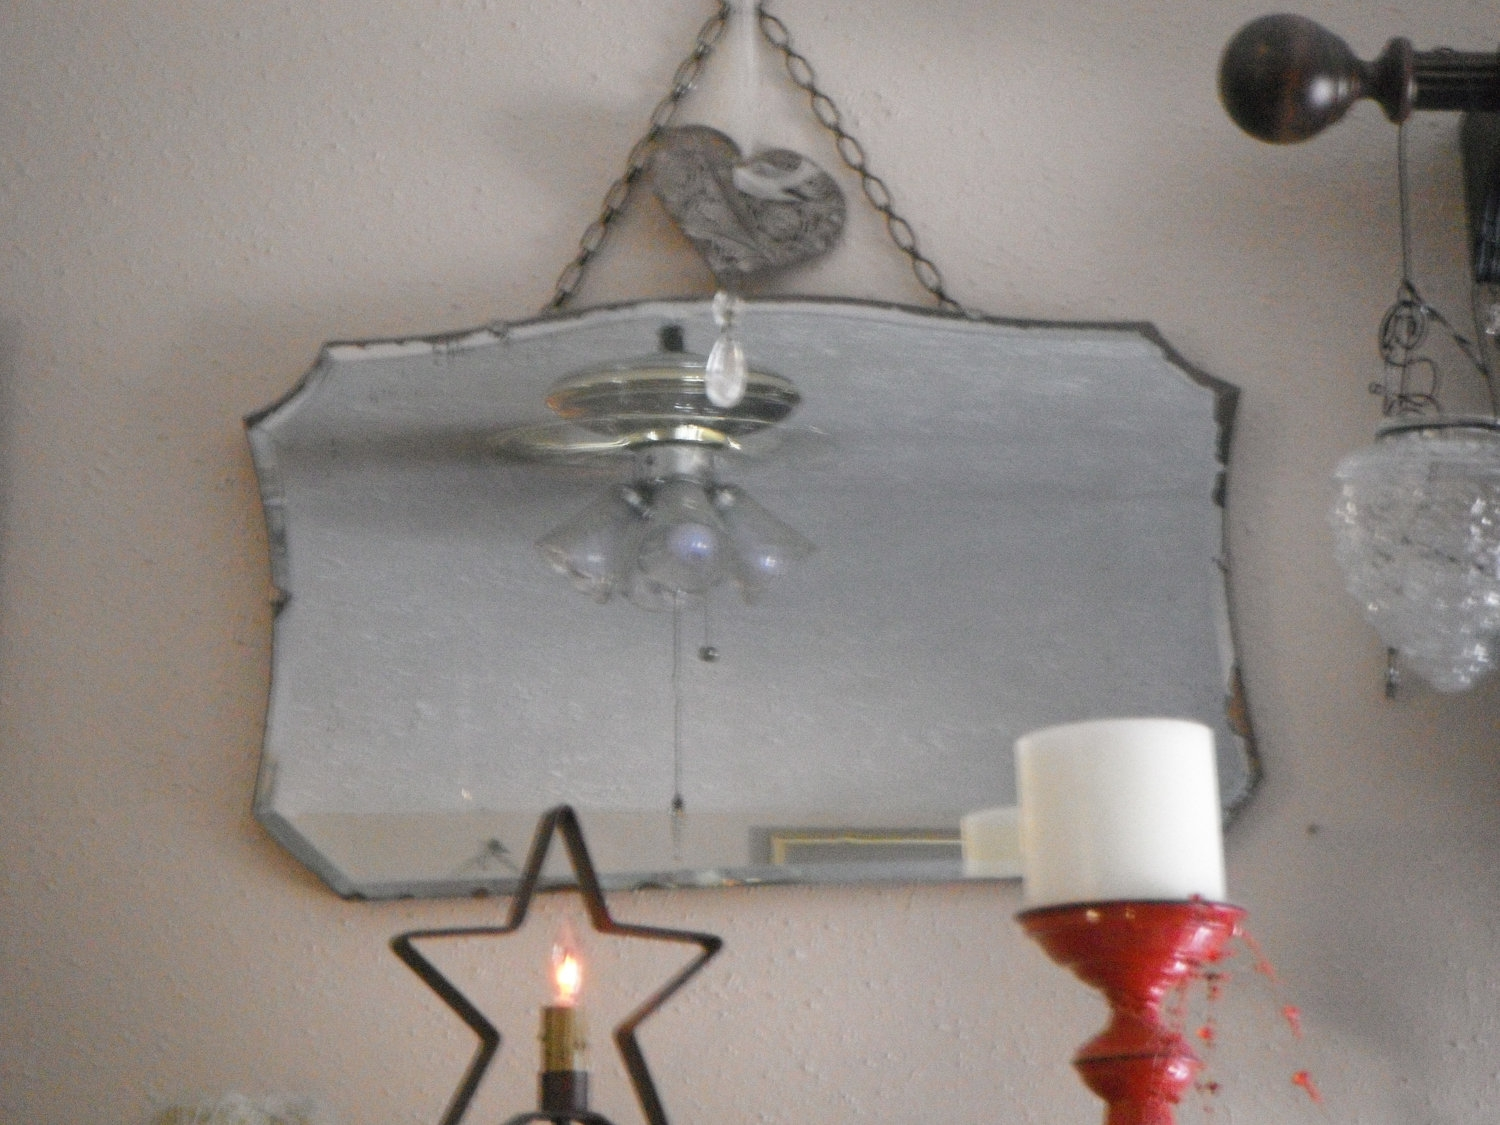 Vintage Frameless Beveled Mirror Vintage Mirrors Vintage Regarding Antique Frameless Mirrors (Image 14 of 15)